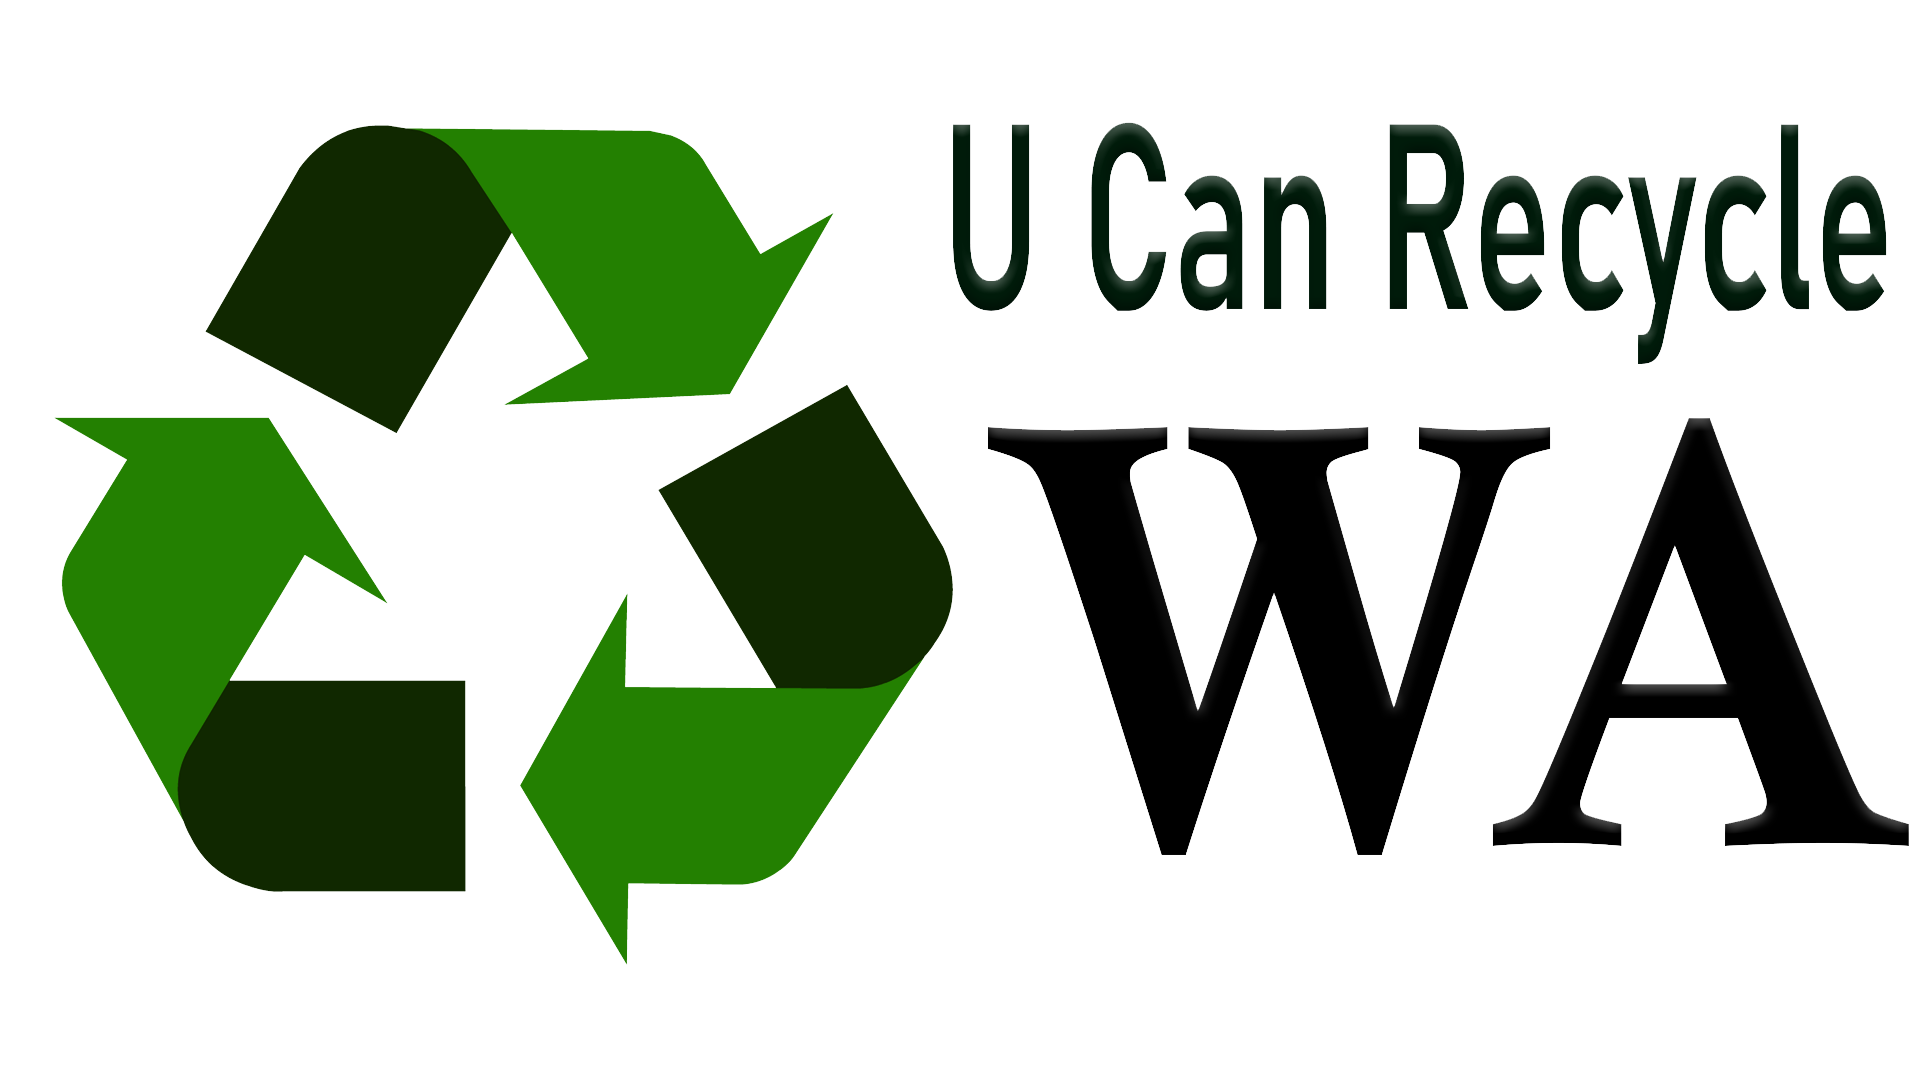 U Can Recycle WA